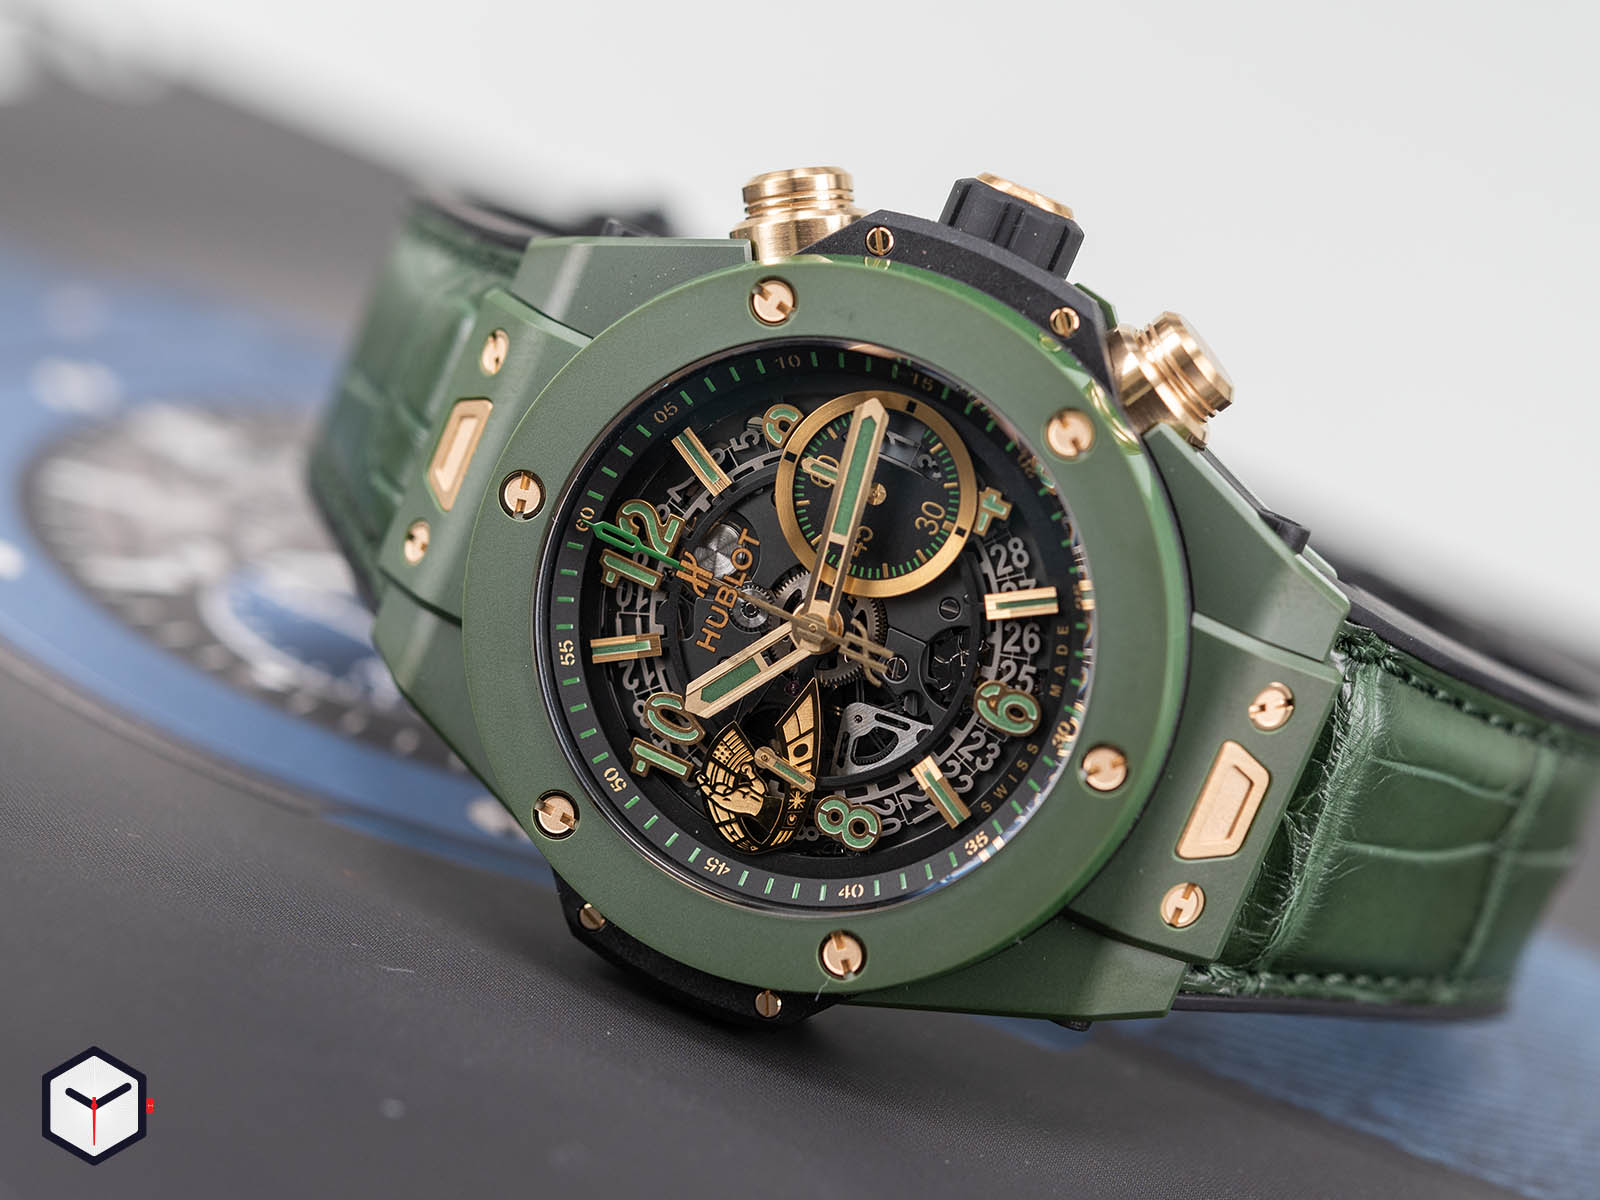 411-gx-1189-lr-wbc19-hublot-big-bang-unico-wbc-2.jpg